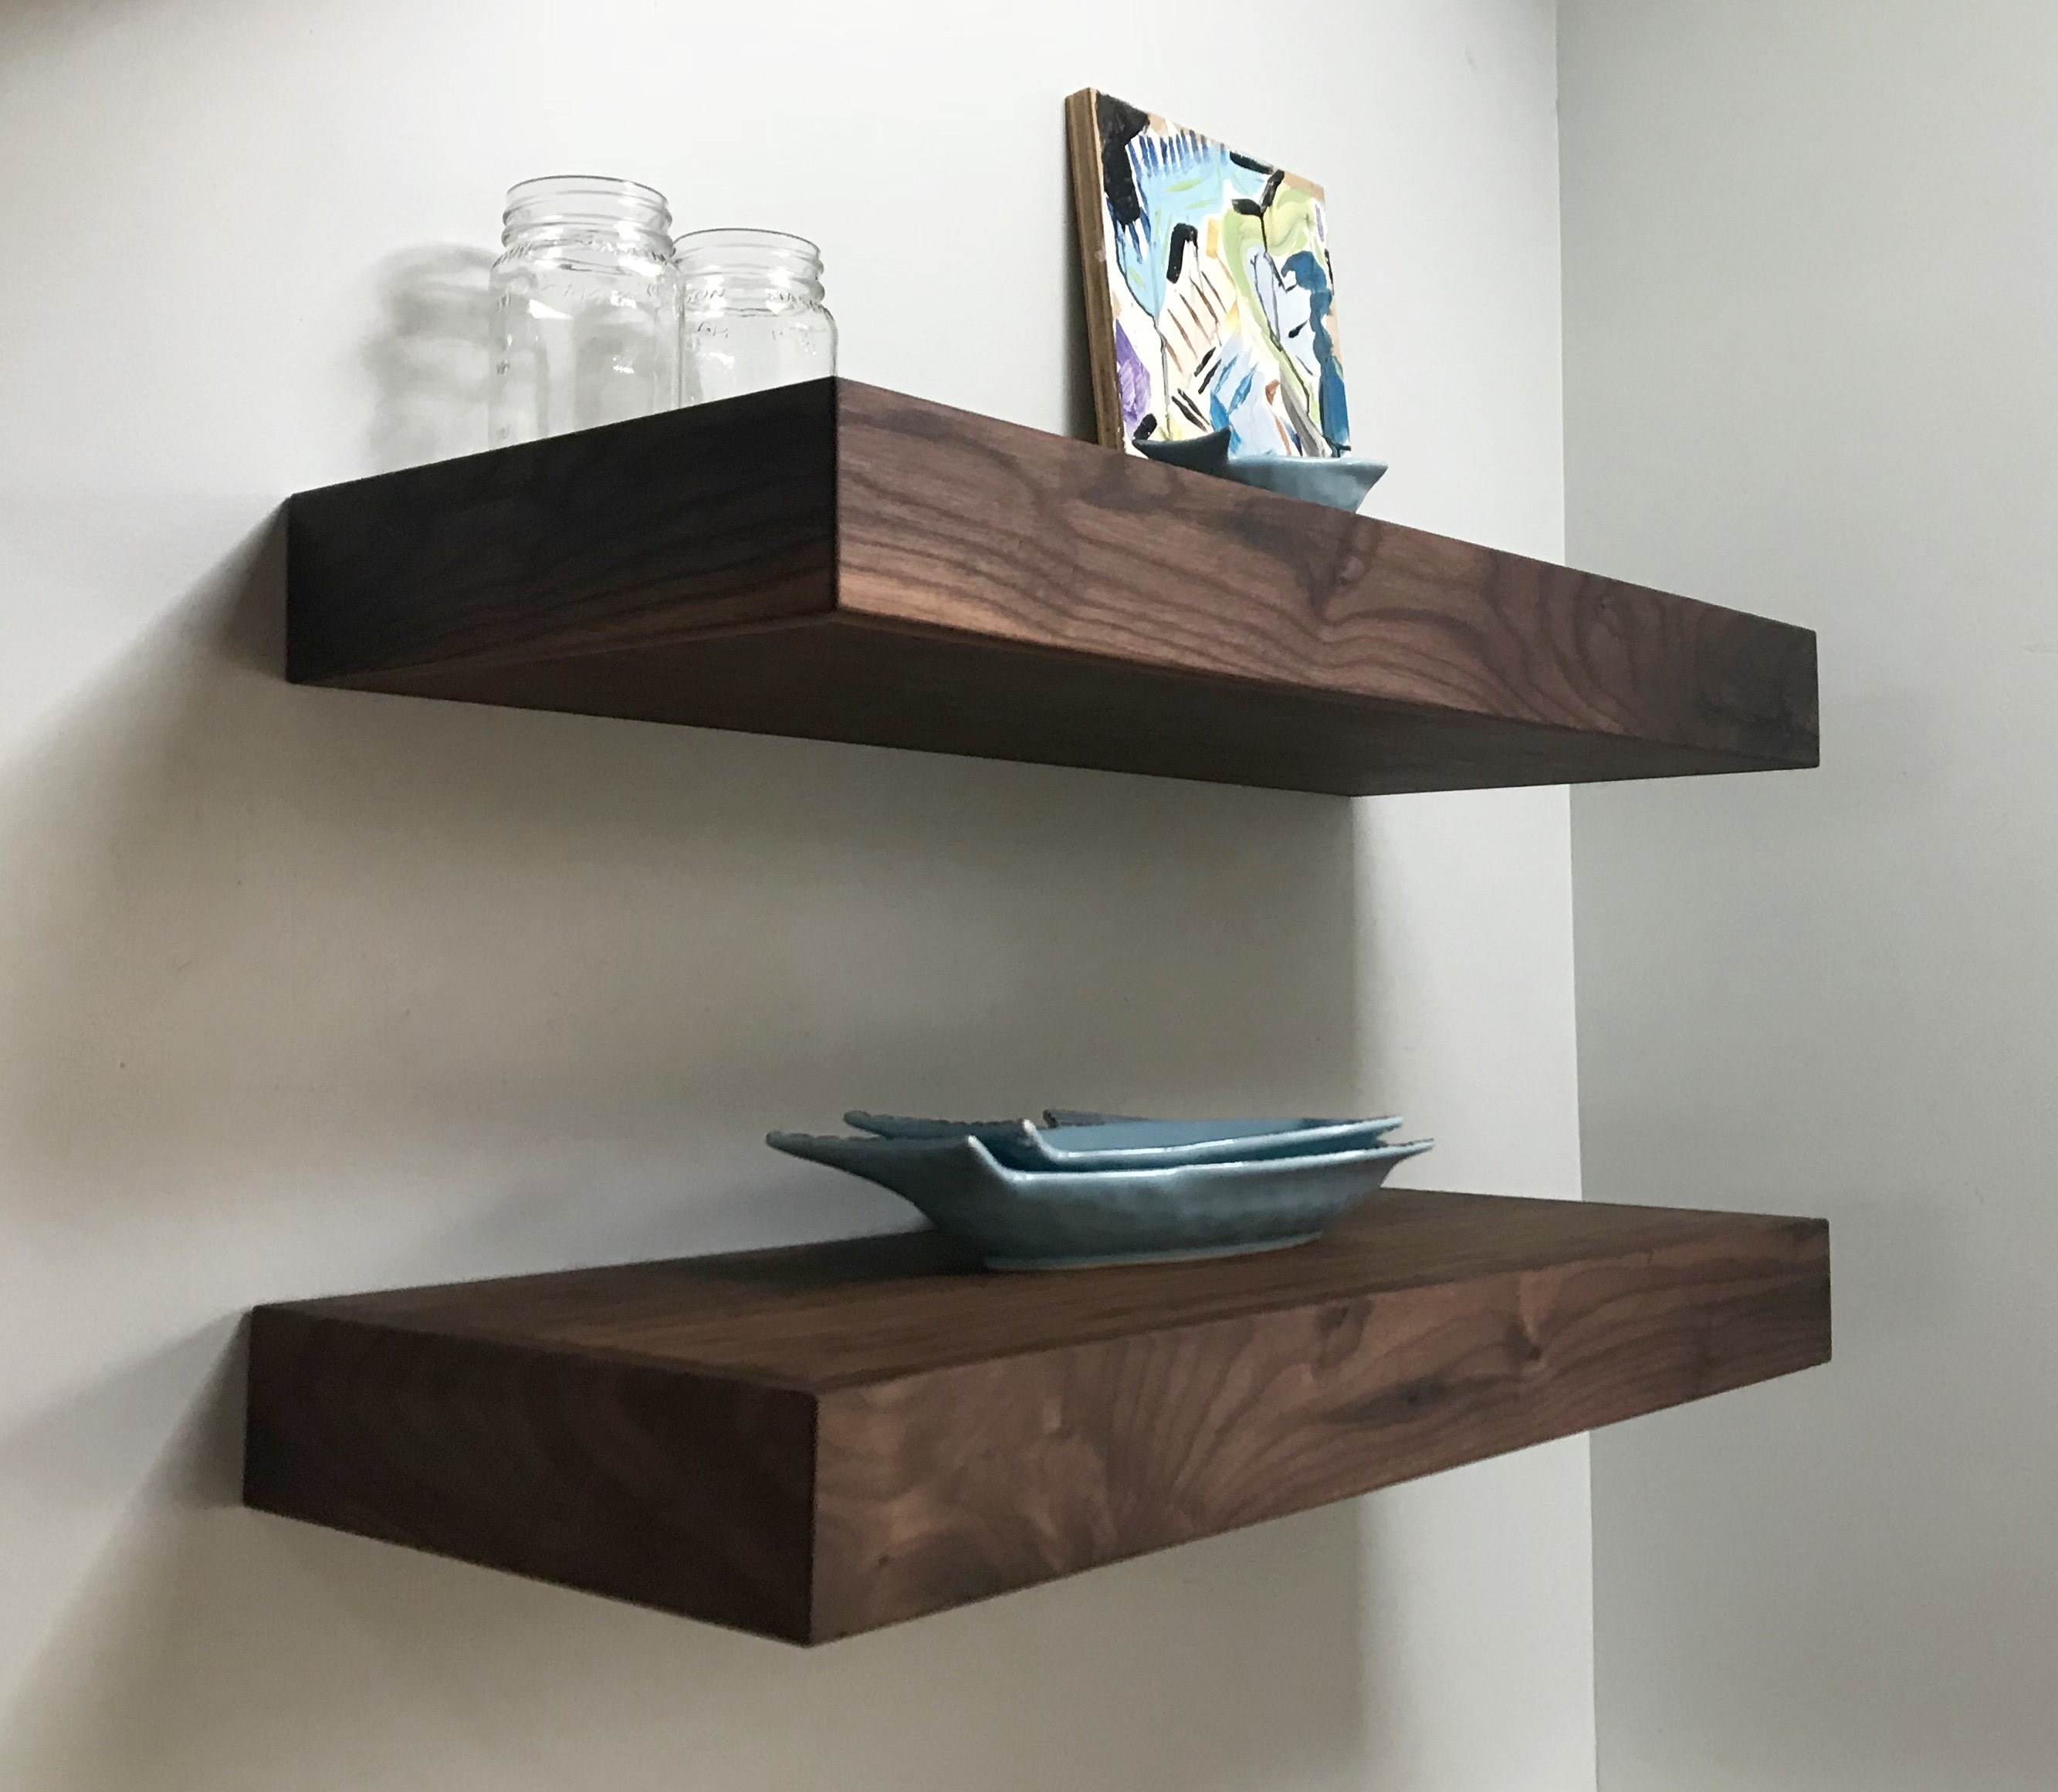 floating shelves walnut kitchen modern shelf etsy fullxfull box audio video component wall mounting invisible fixings brackets nickel ikea black shoe cabinet free fireplace ash